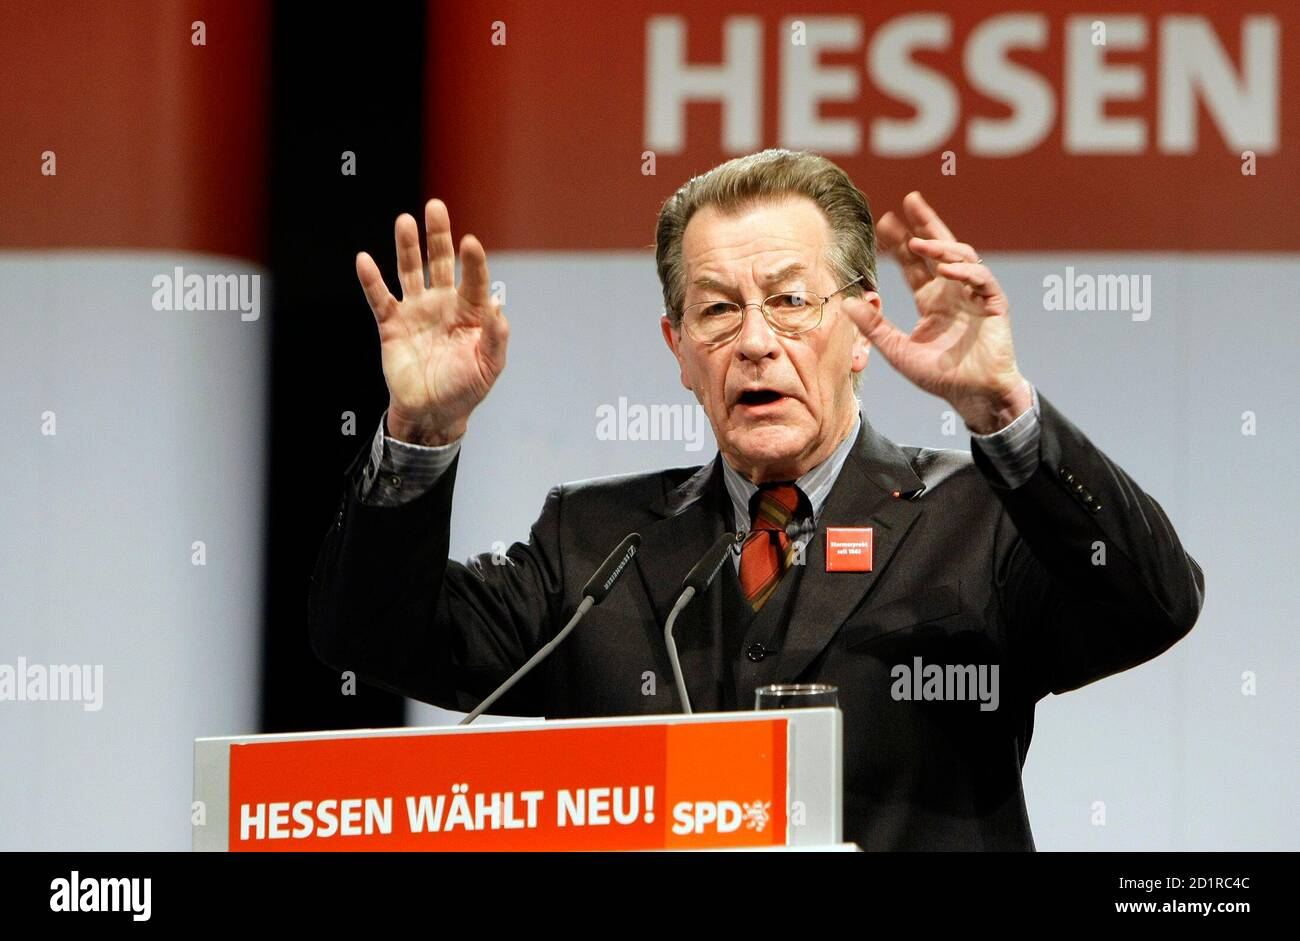 Franz Muentefering, leader of Germany's Social Democratic Party SPD, delivers a speech during an extraordinary party convention in Alsfeld, December 13, 2008.     REUTERS/Thomas Bohlen   (GERMANY) Banque D'Images